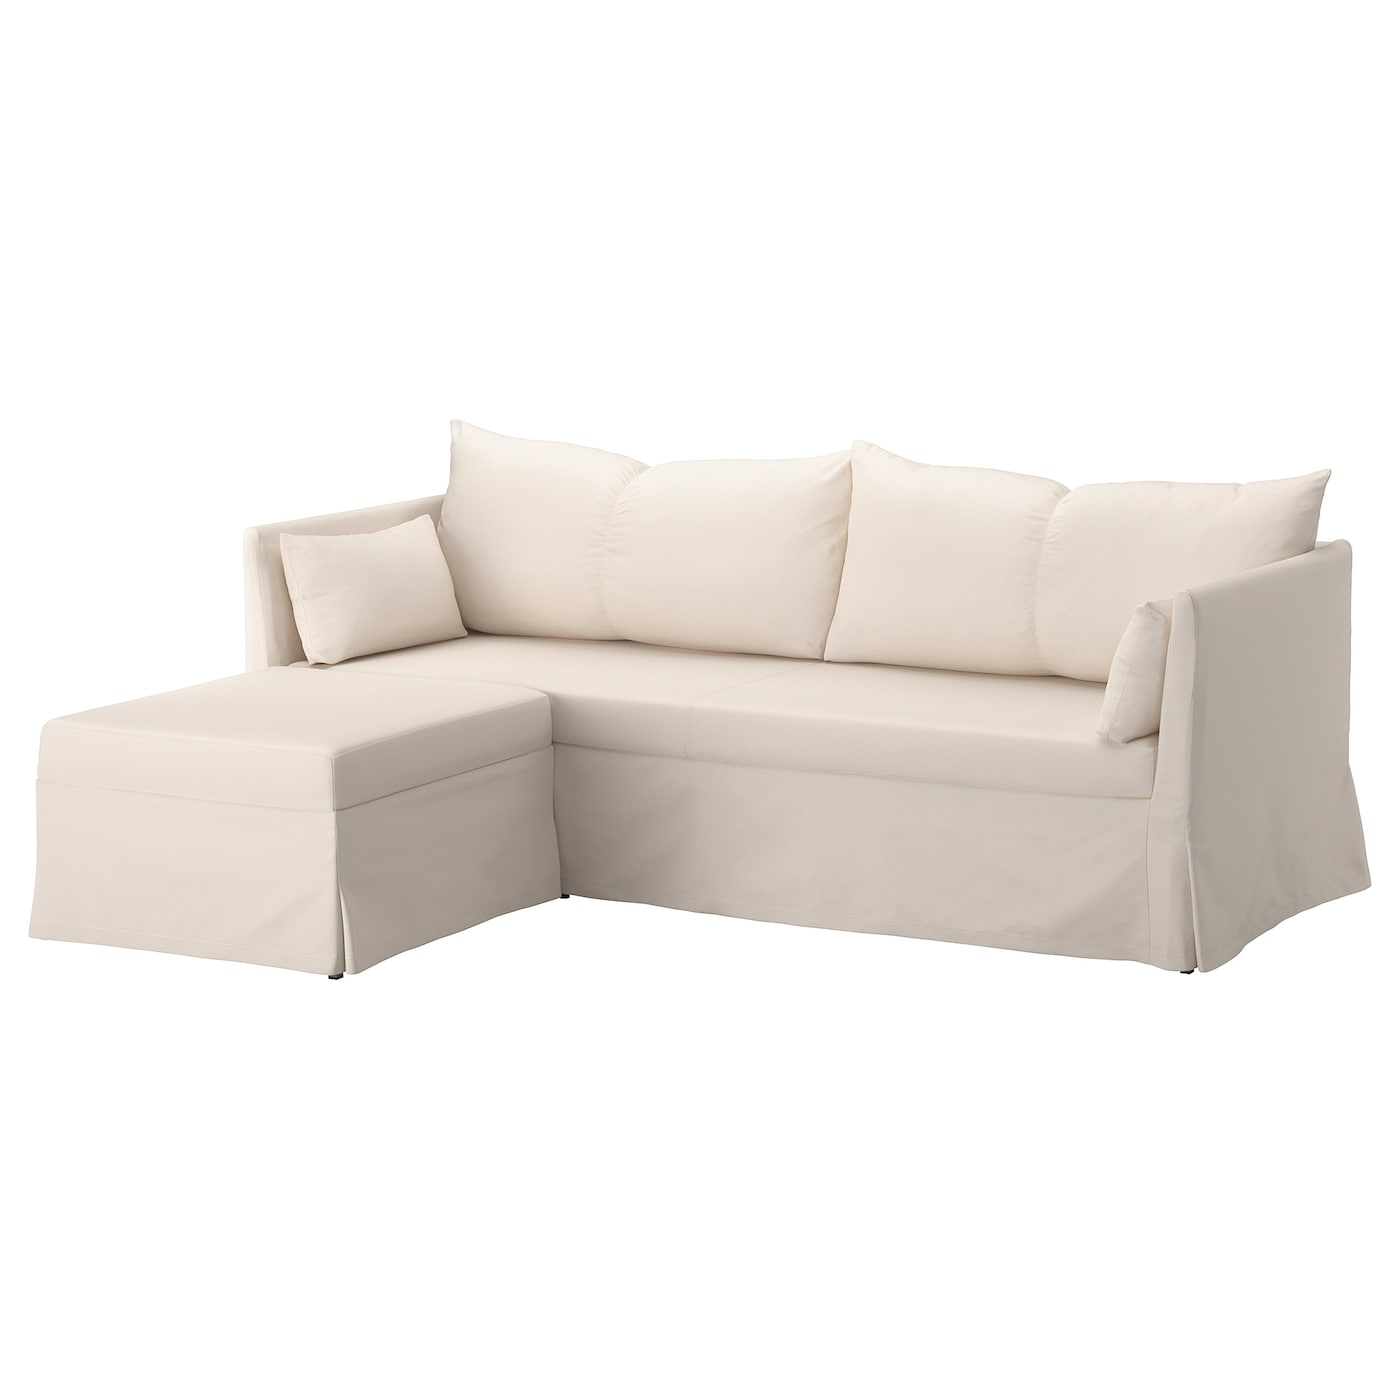 Sofa beds chair beds ikea ireland dublin for Chaise ikea blanche